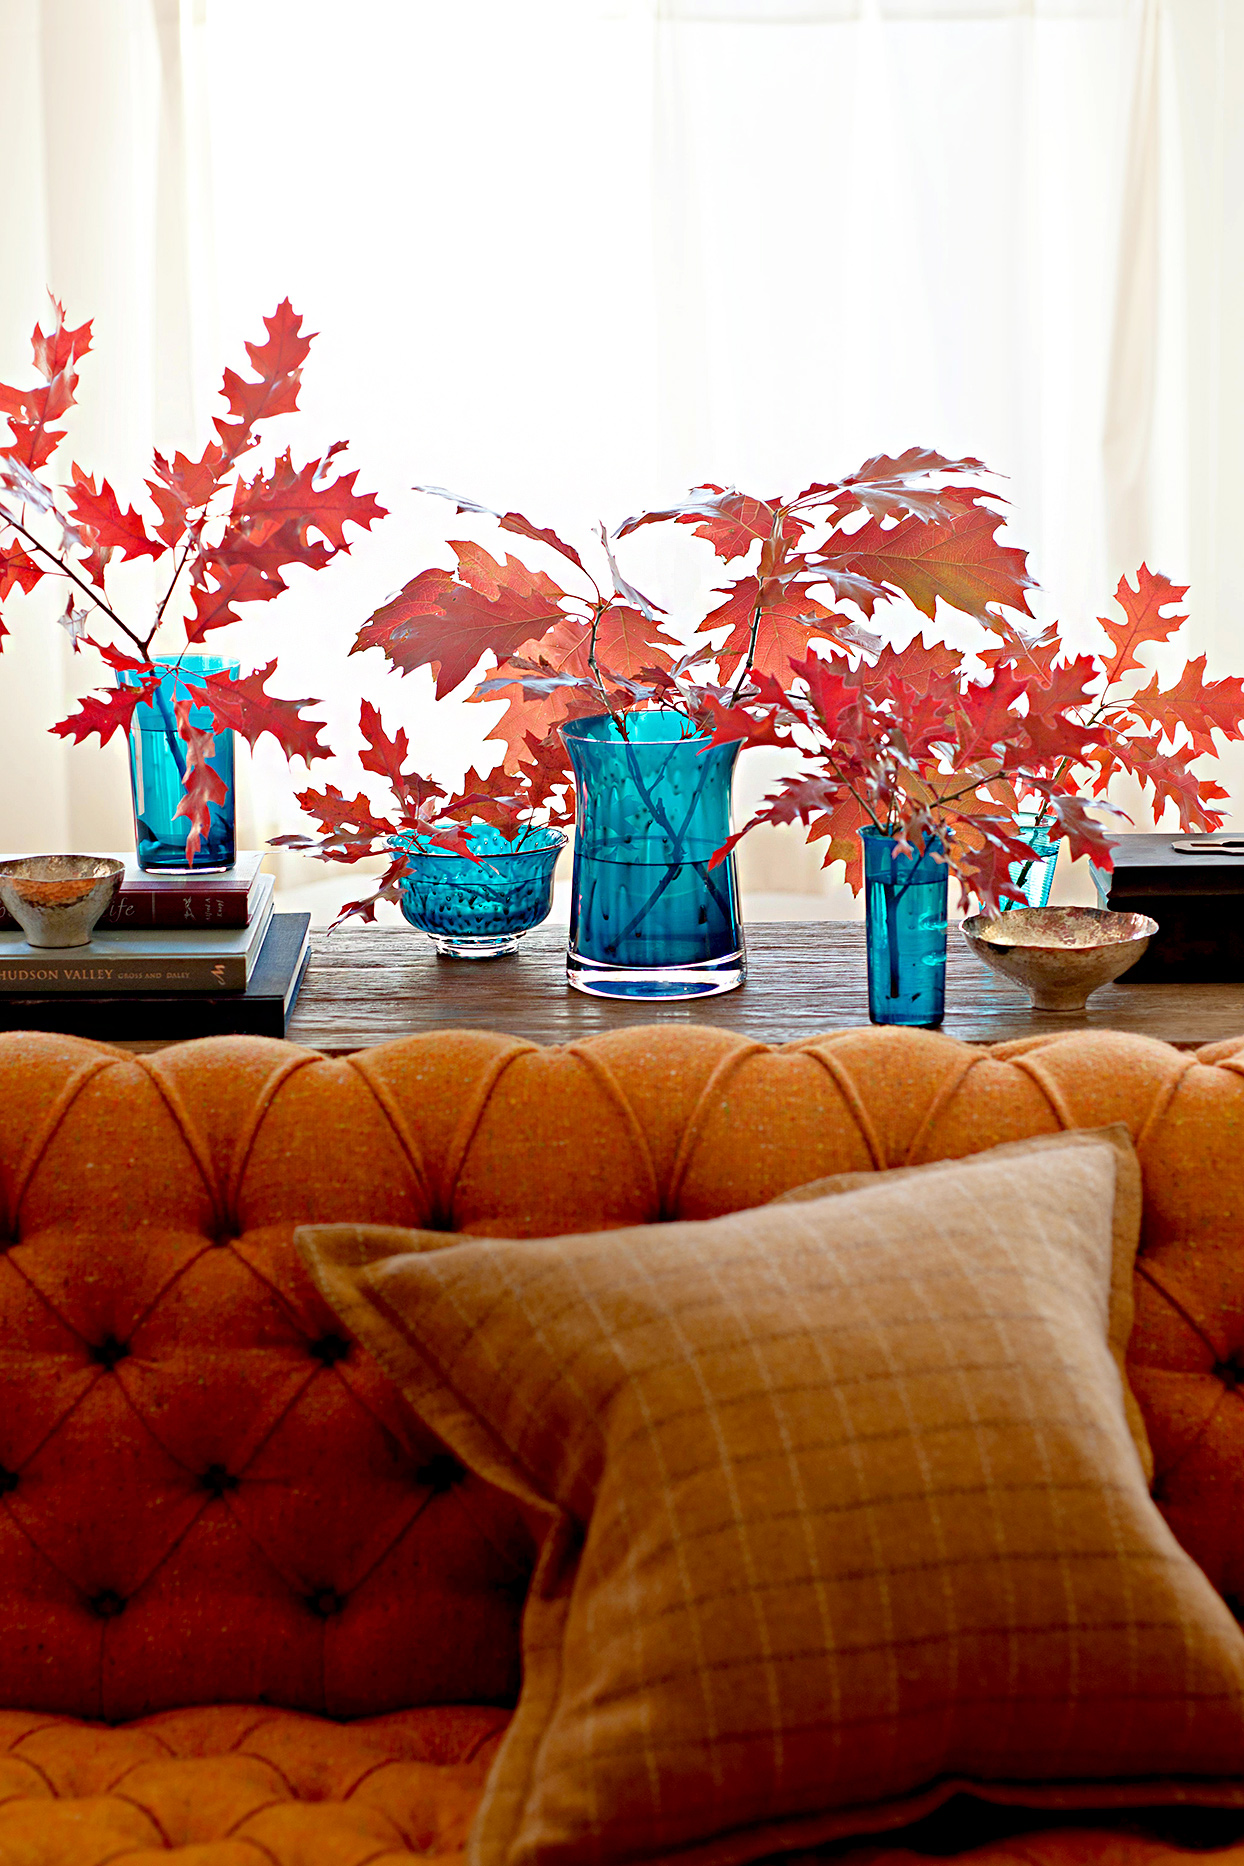 Fall leaves in blue glass vases behind couch